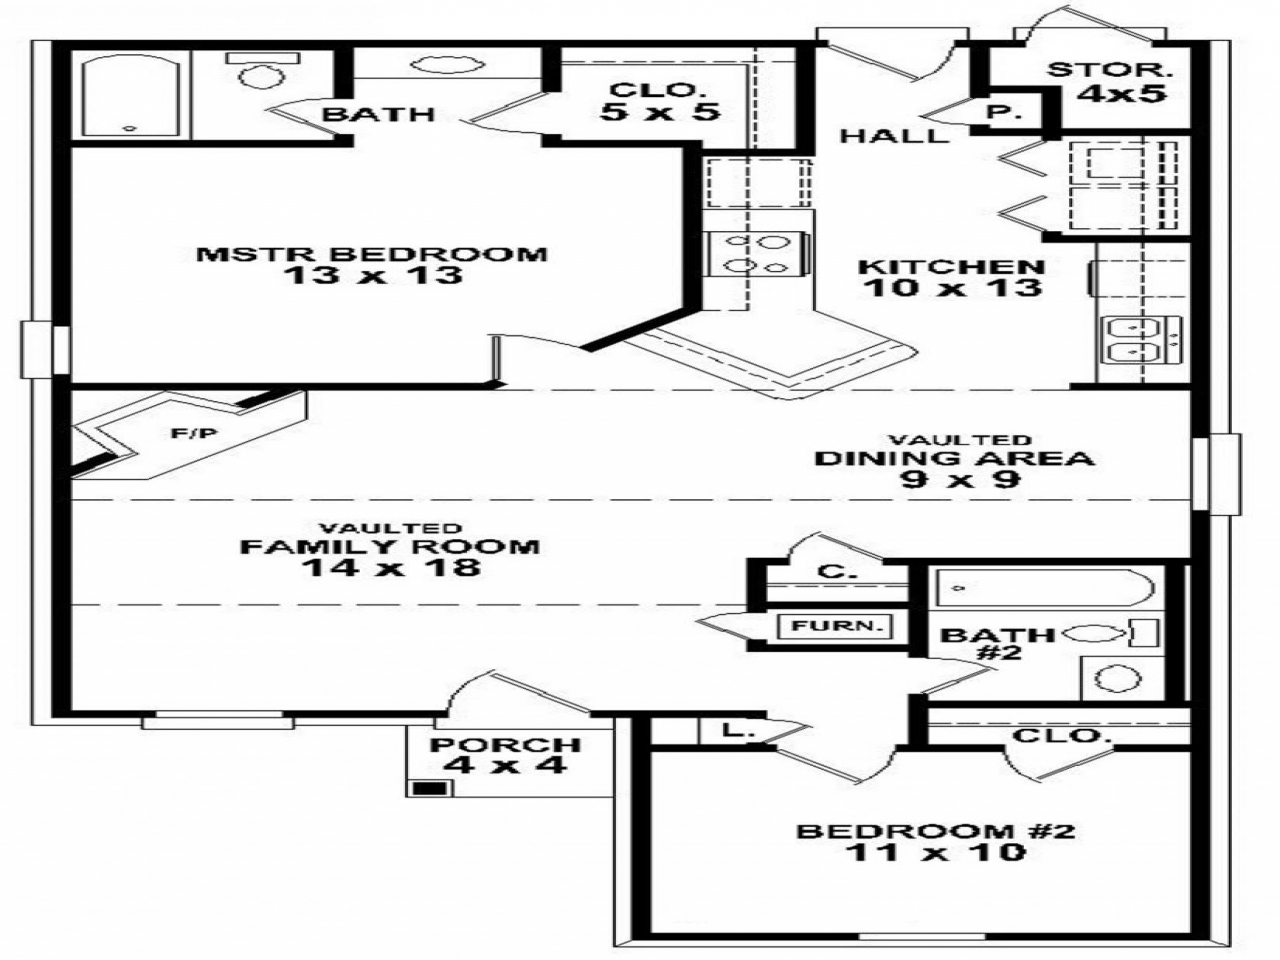 Simple 2 bedroom house floor plans small two bedroom house for Two bedroom house